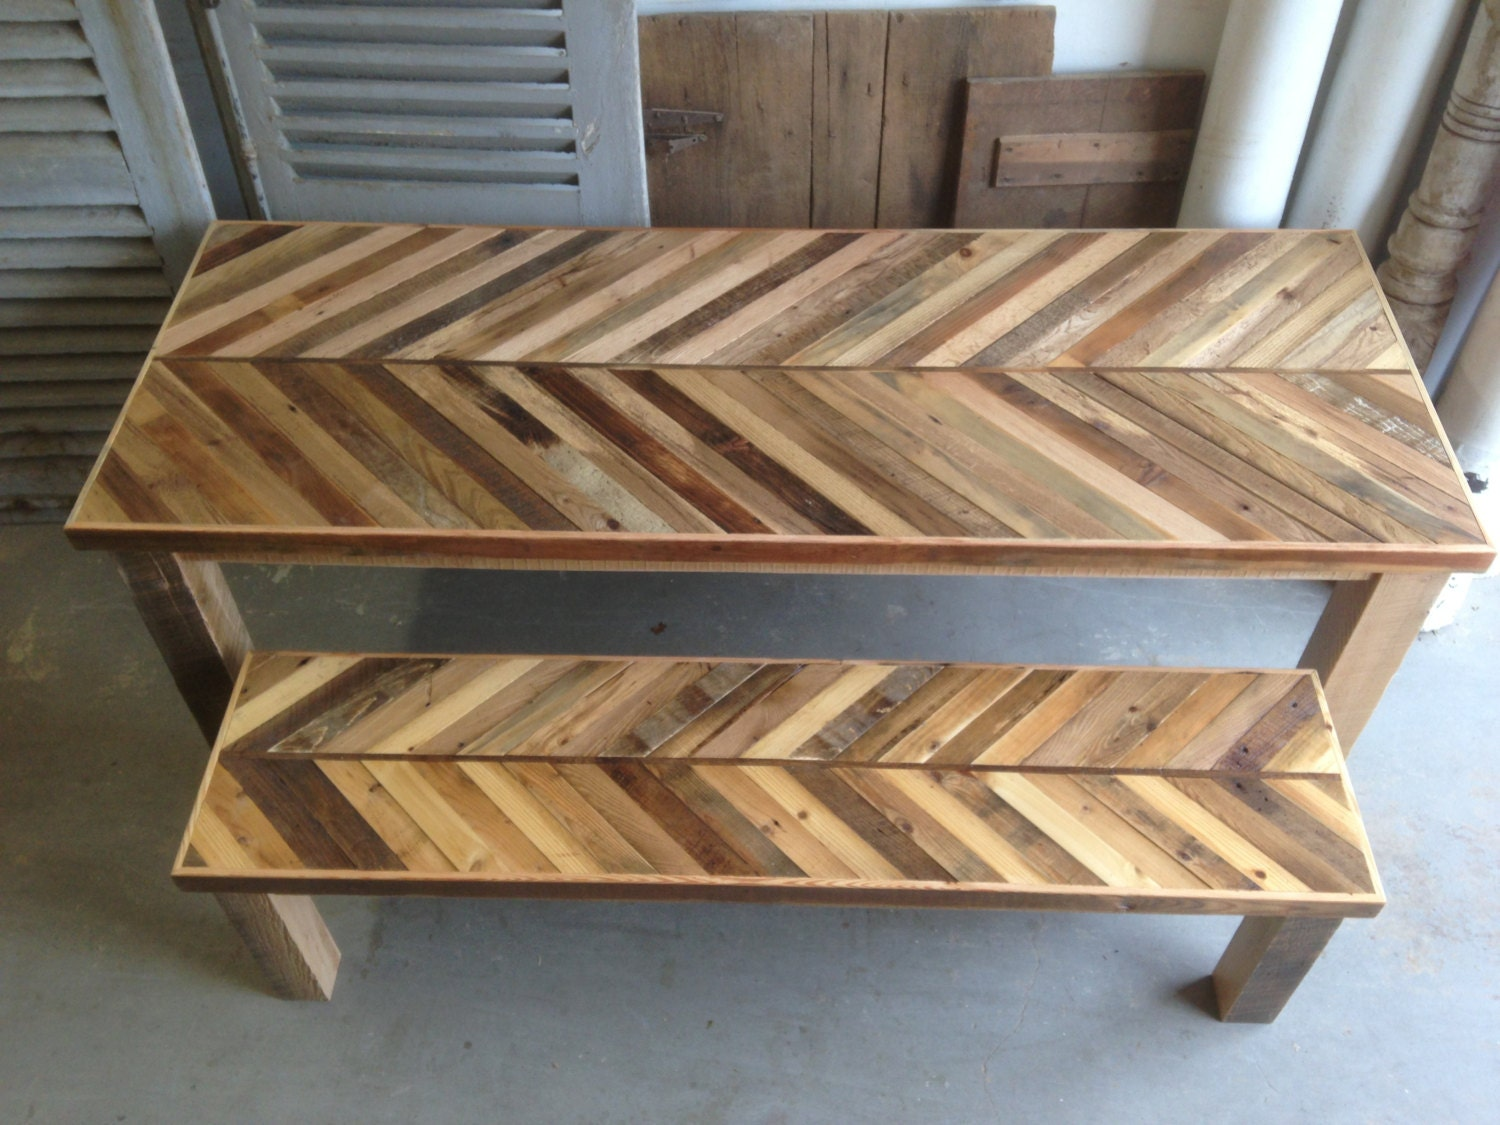 Reclaimed Pallet and Barn Wood Kitchen Table with Matching